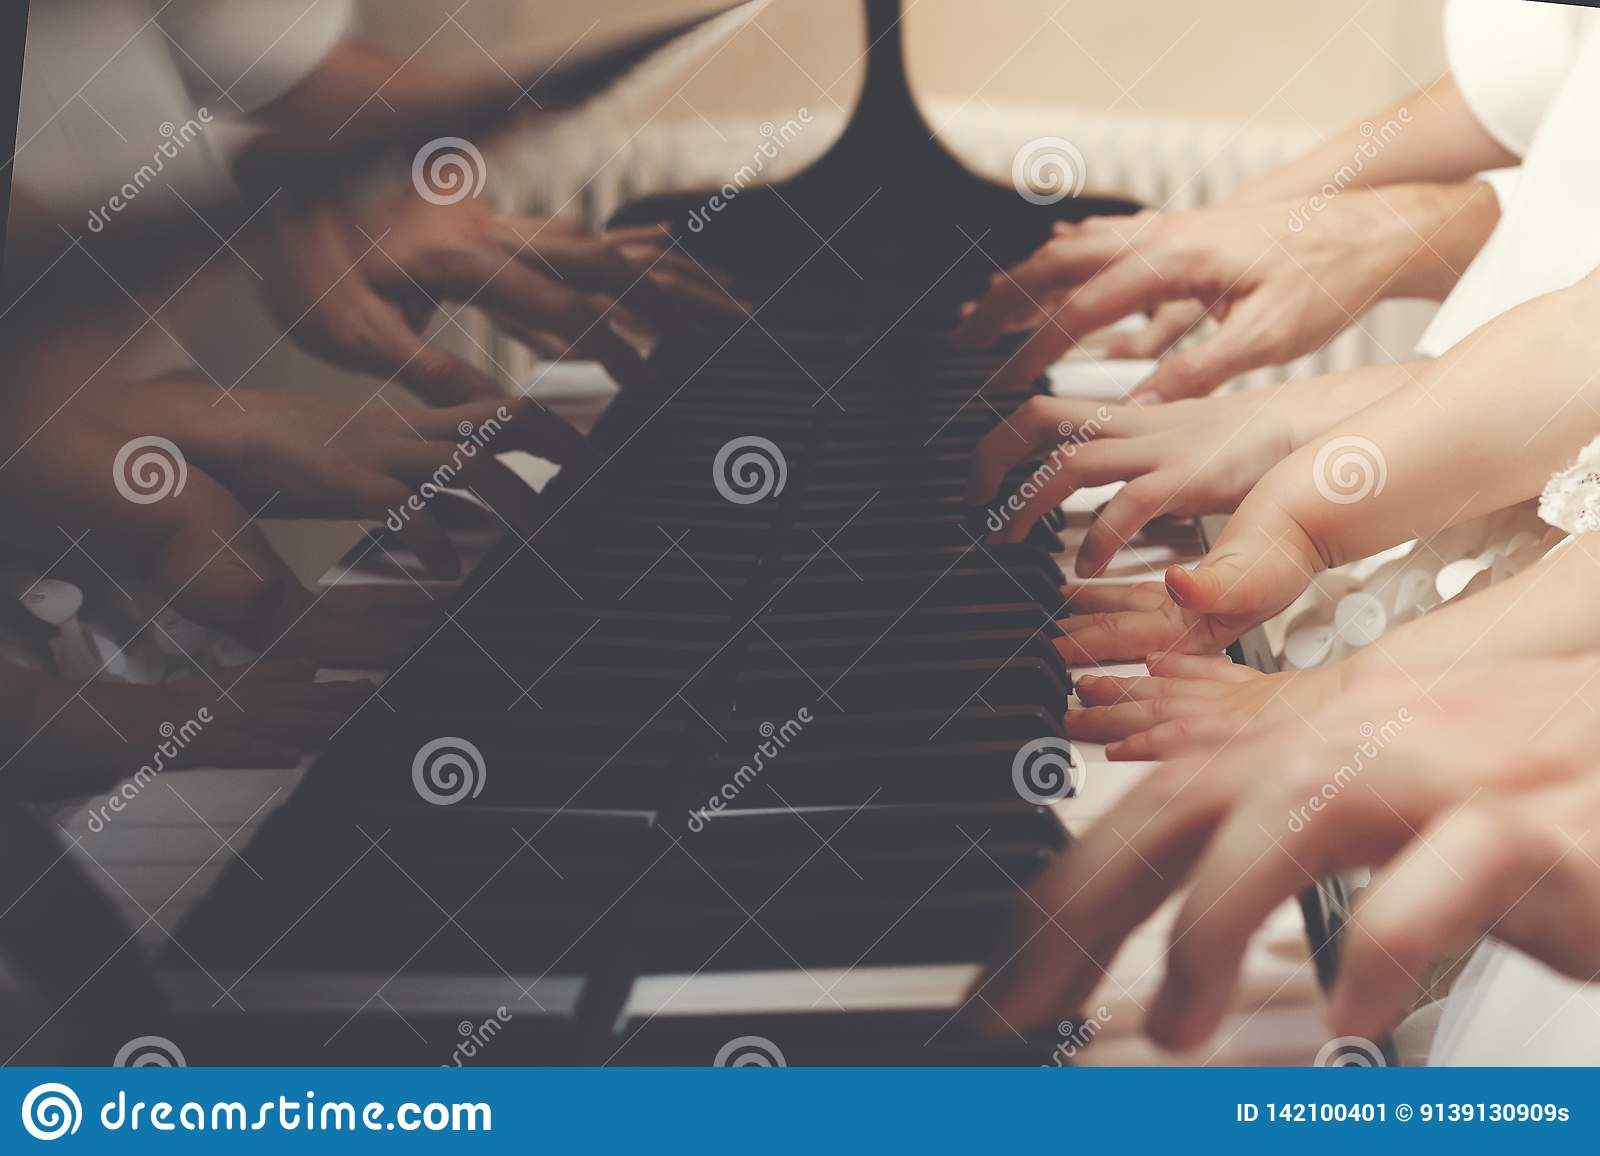 Family of three members playing a piano together